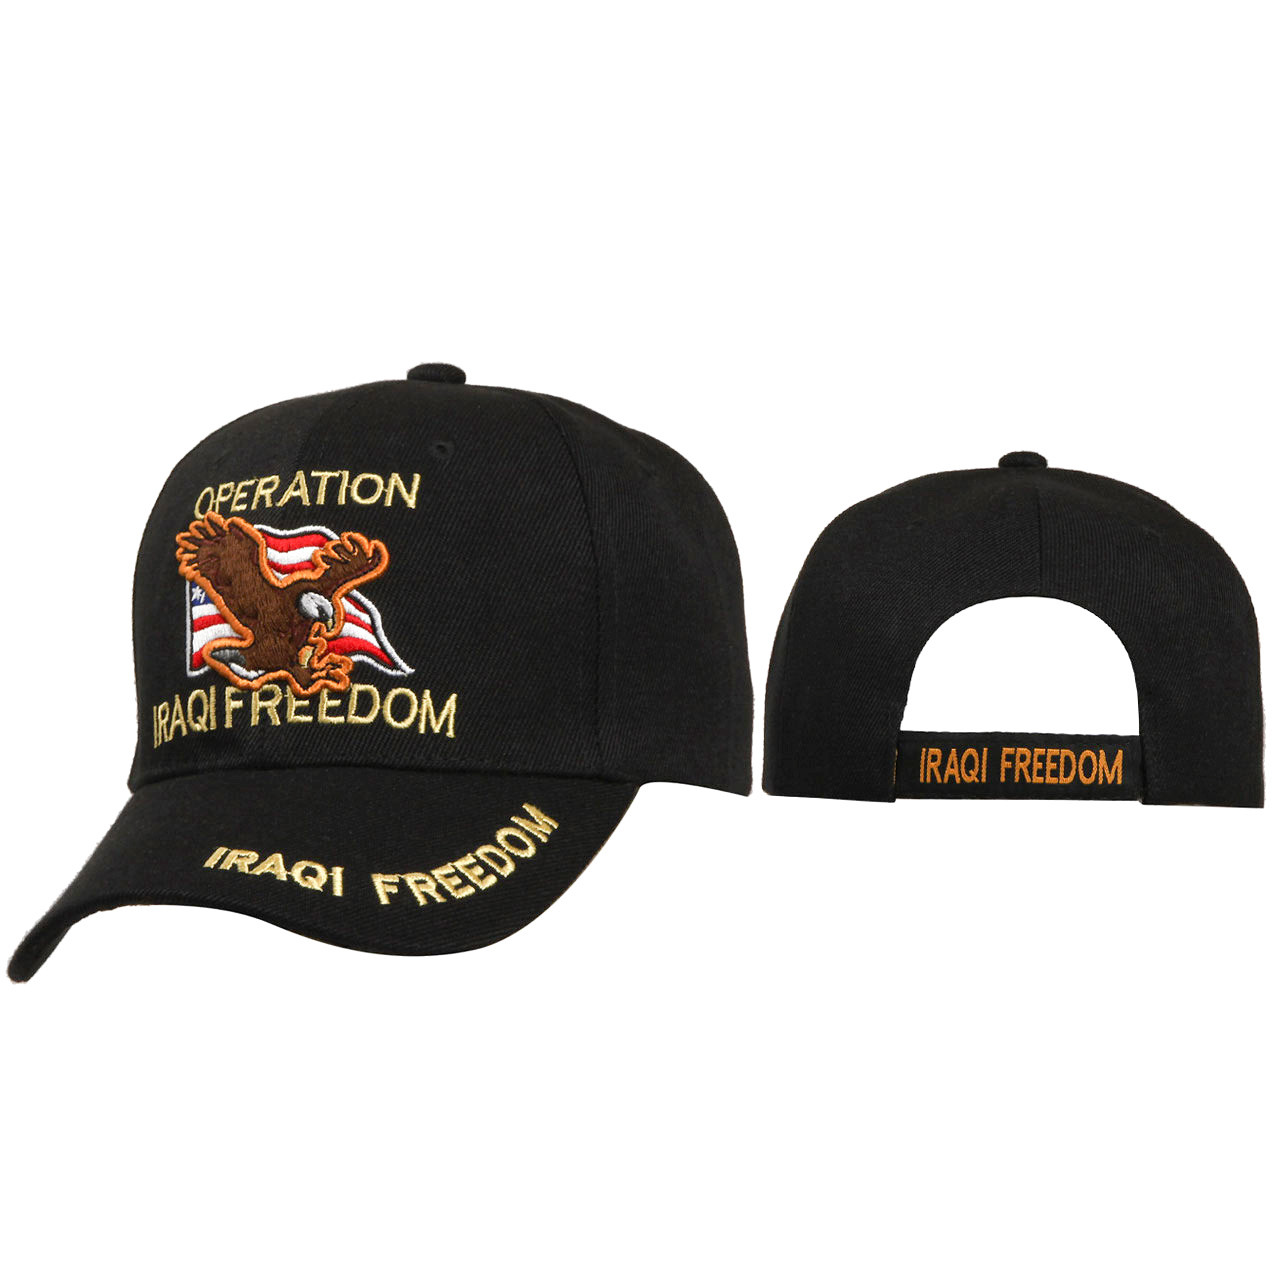 Veteran Hats Wholesale ~ C182 ~ Operation Iraqi Freedom